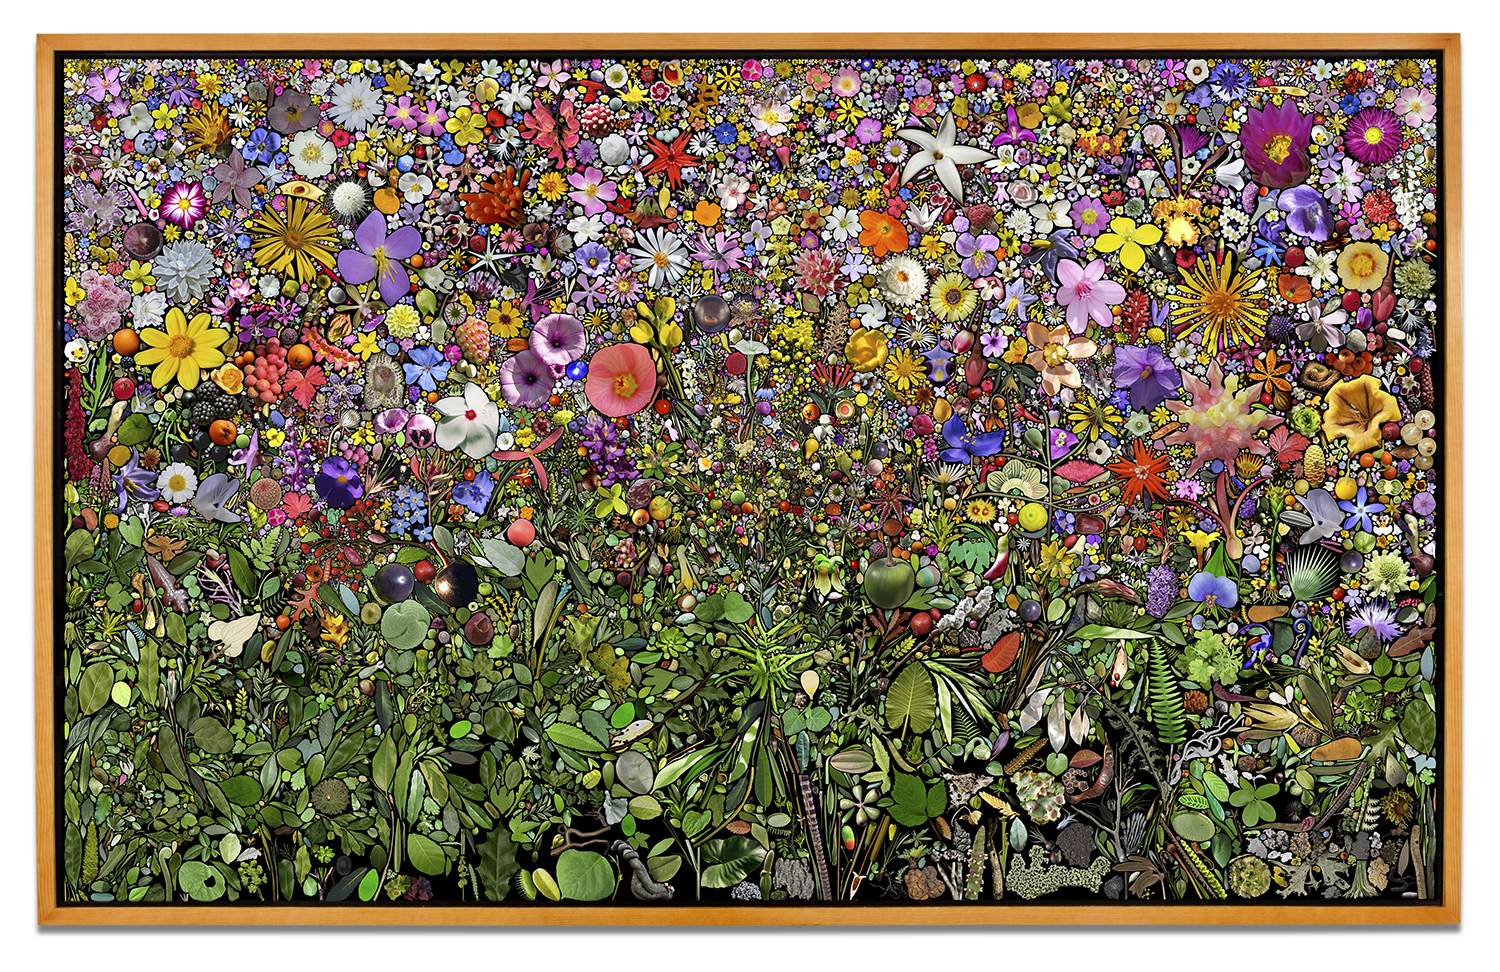 Simmons & Burke,  U.S. Plant Collection Palette , 2013, pigment print, 99 x 159 inches